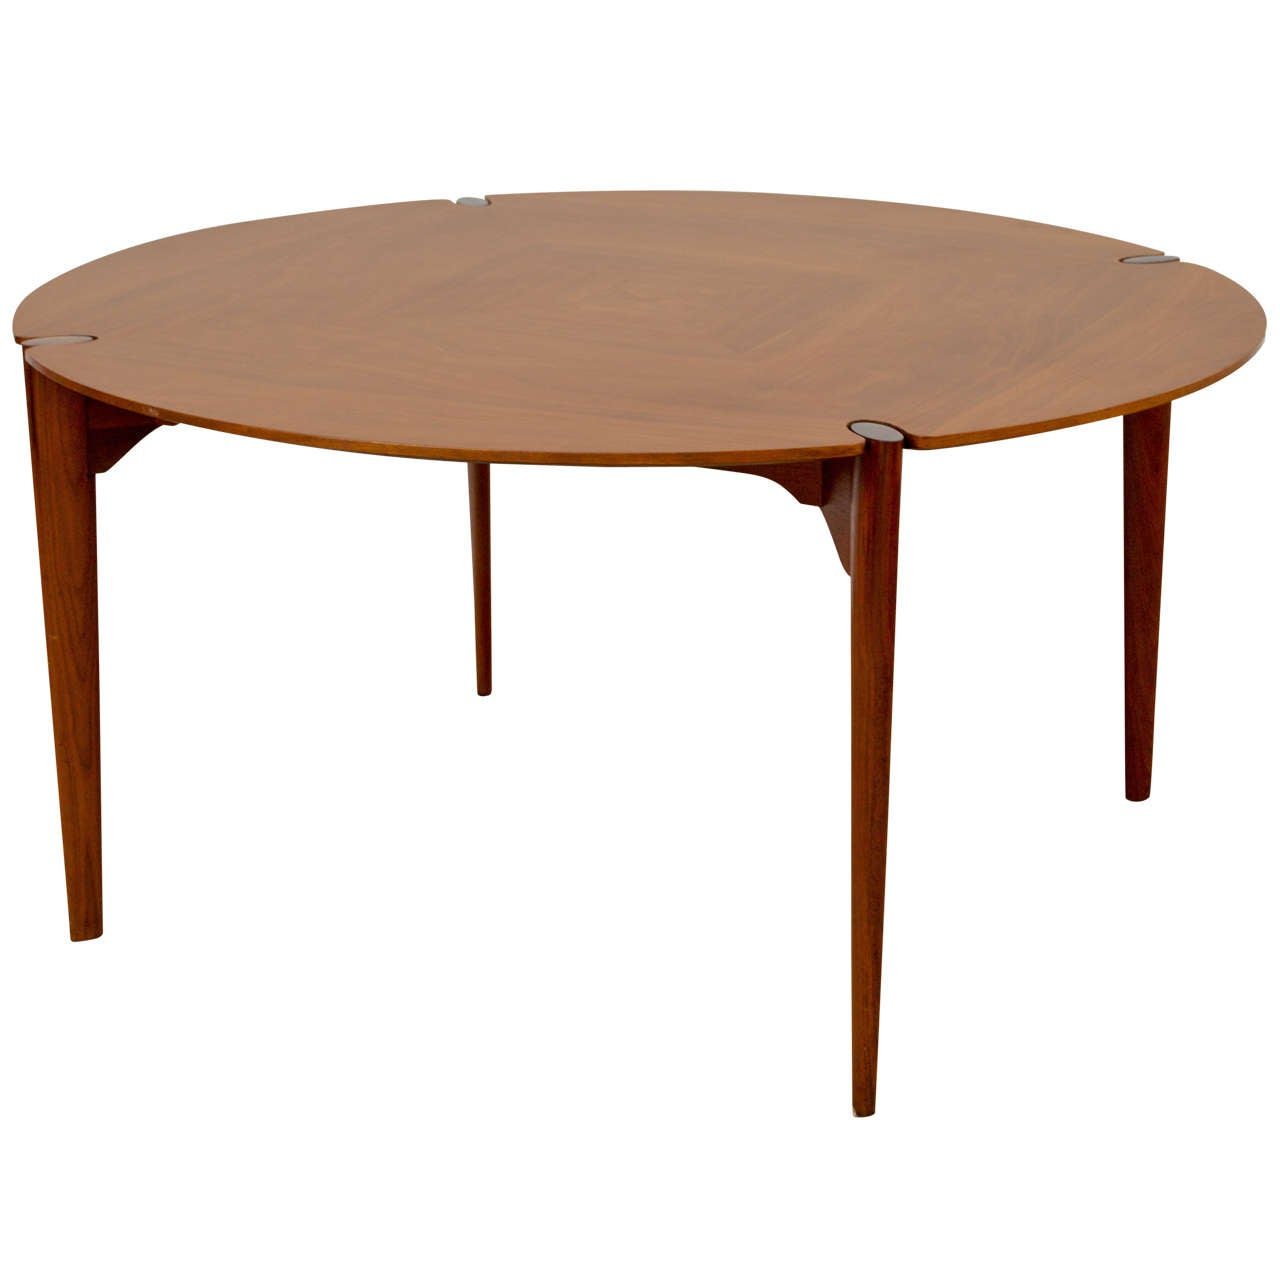 Walnut dining game table by brown saltman at 1stdibs for Dining room game table